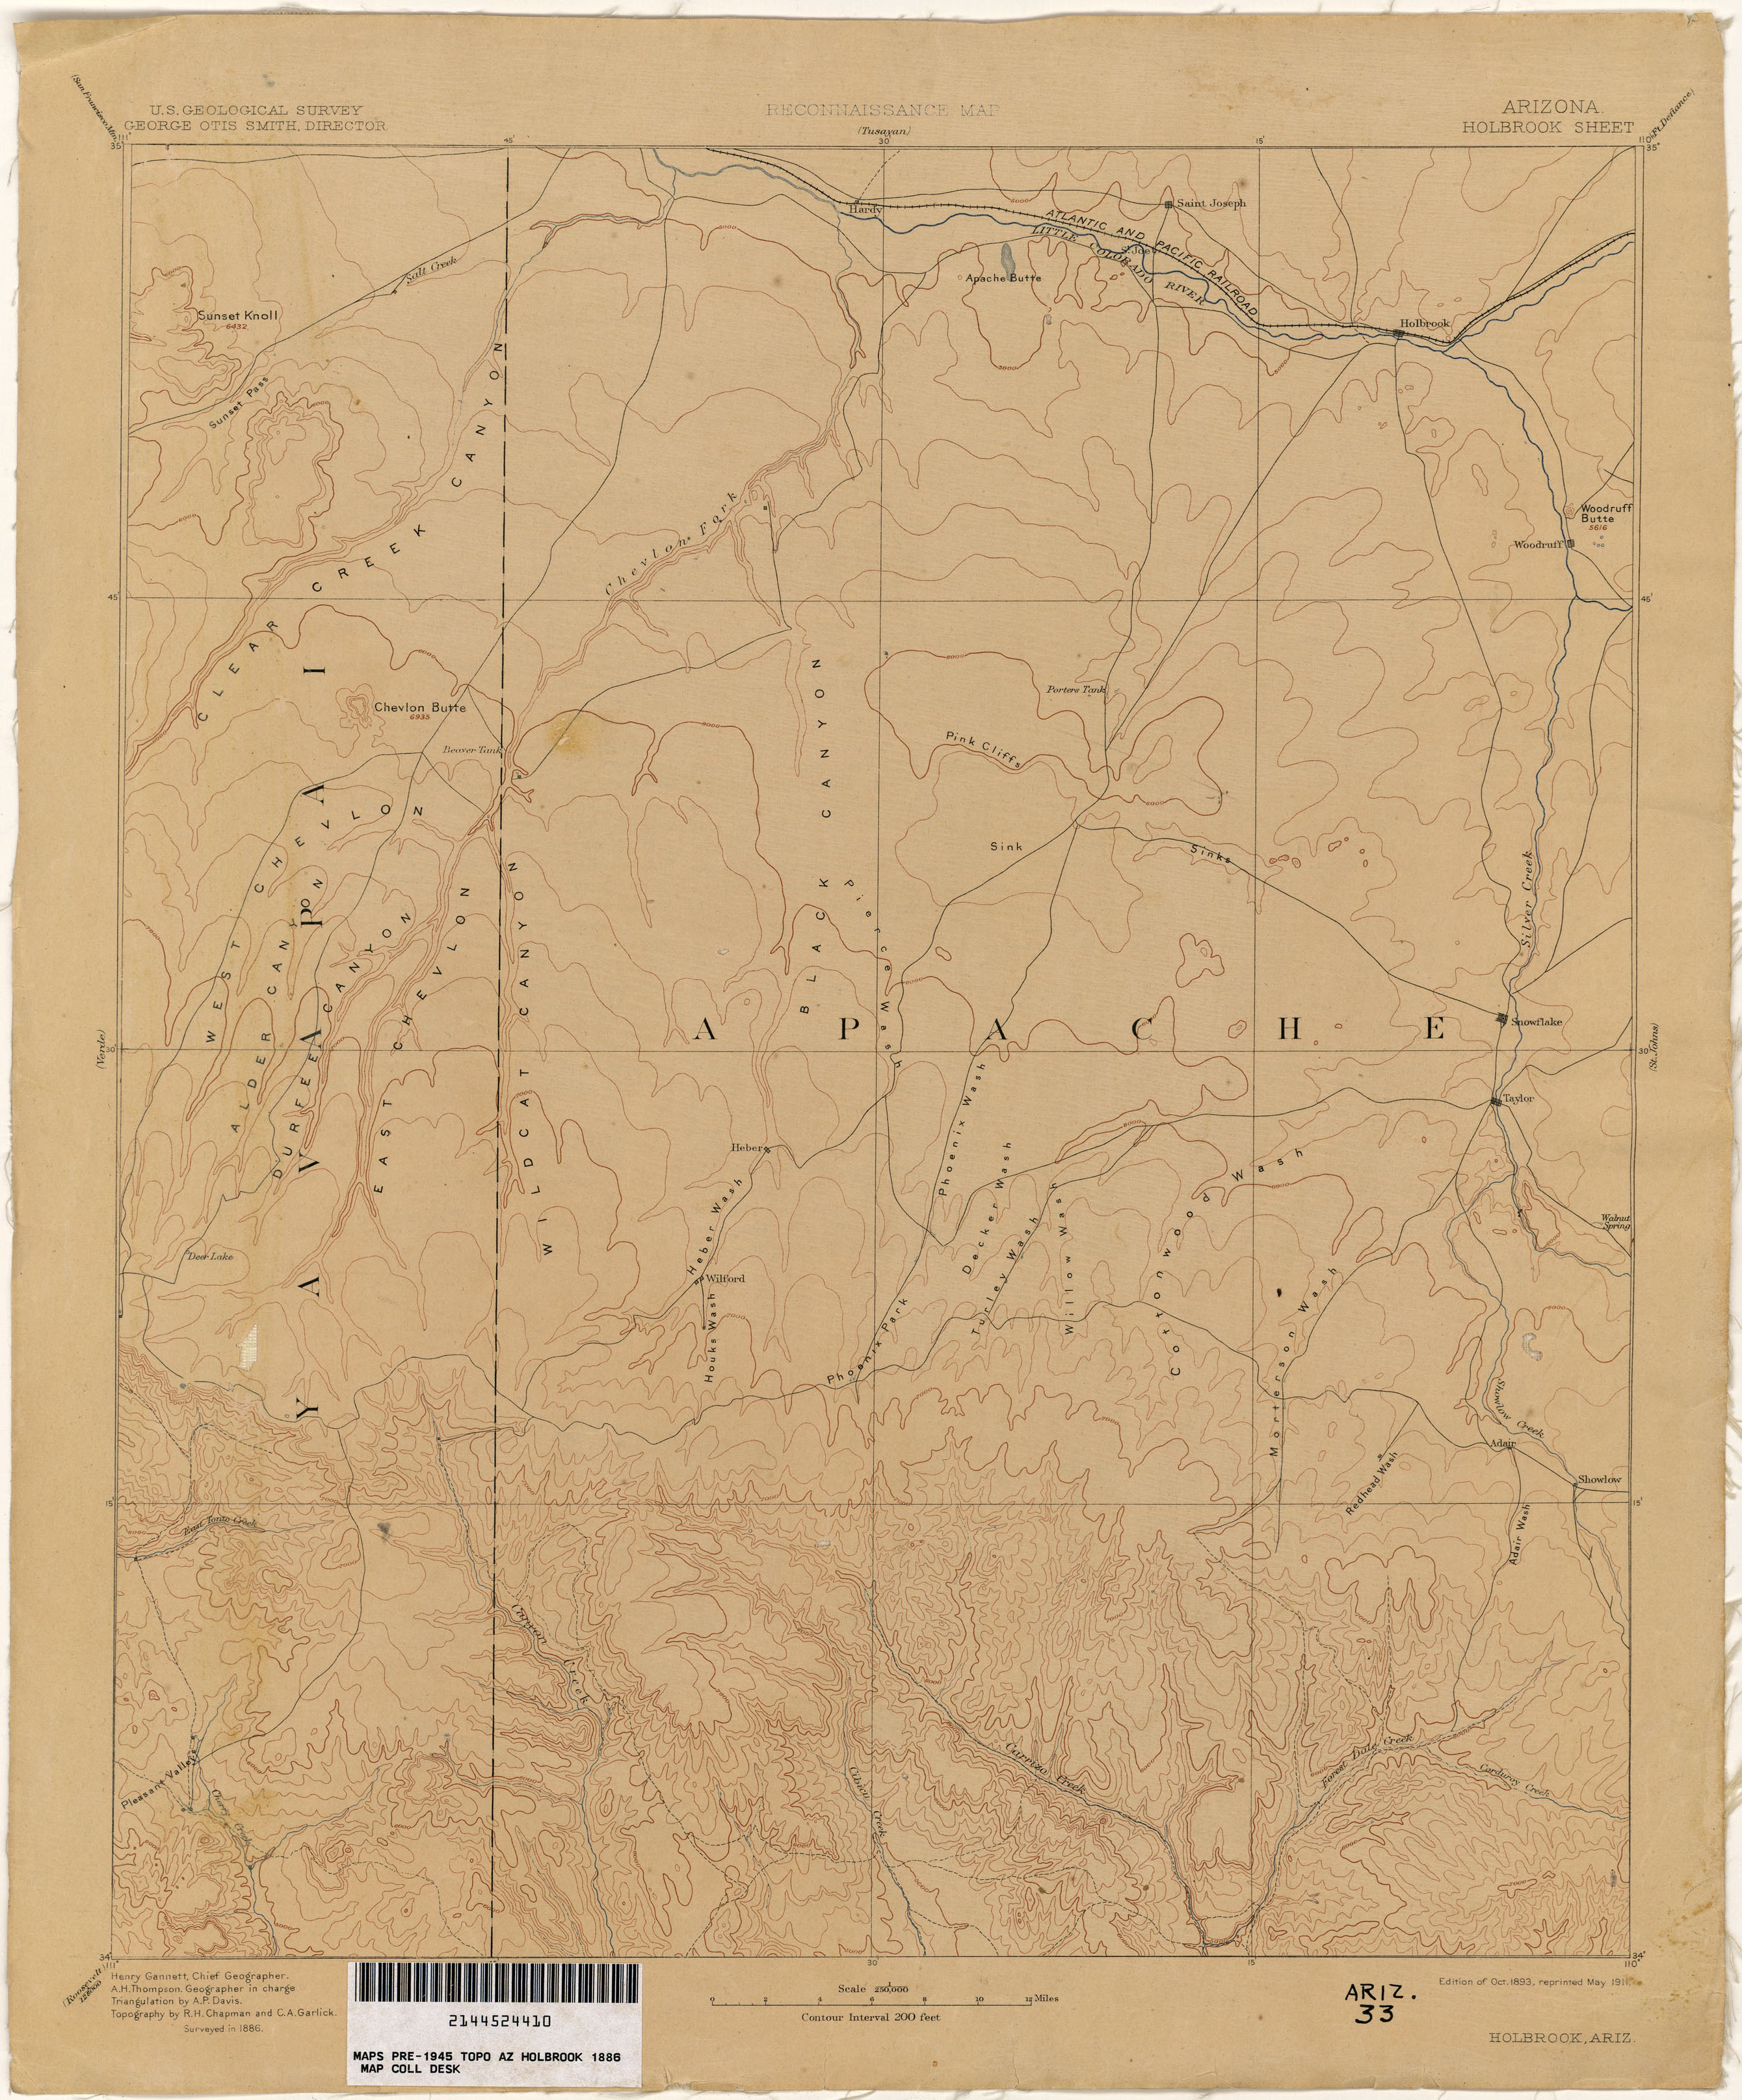 Map Of Saint Johns Arizona.Arizona Historical Topographic Maps Perry Castaneda Map Collection